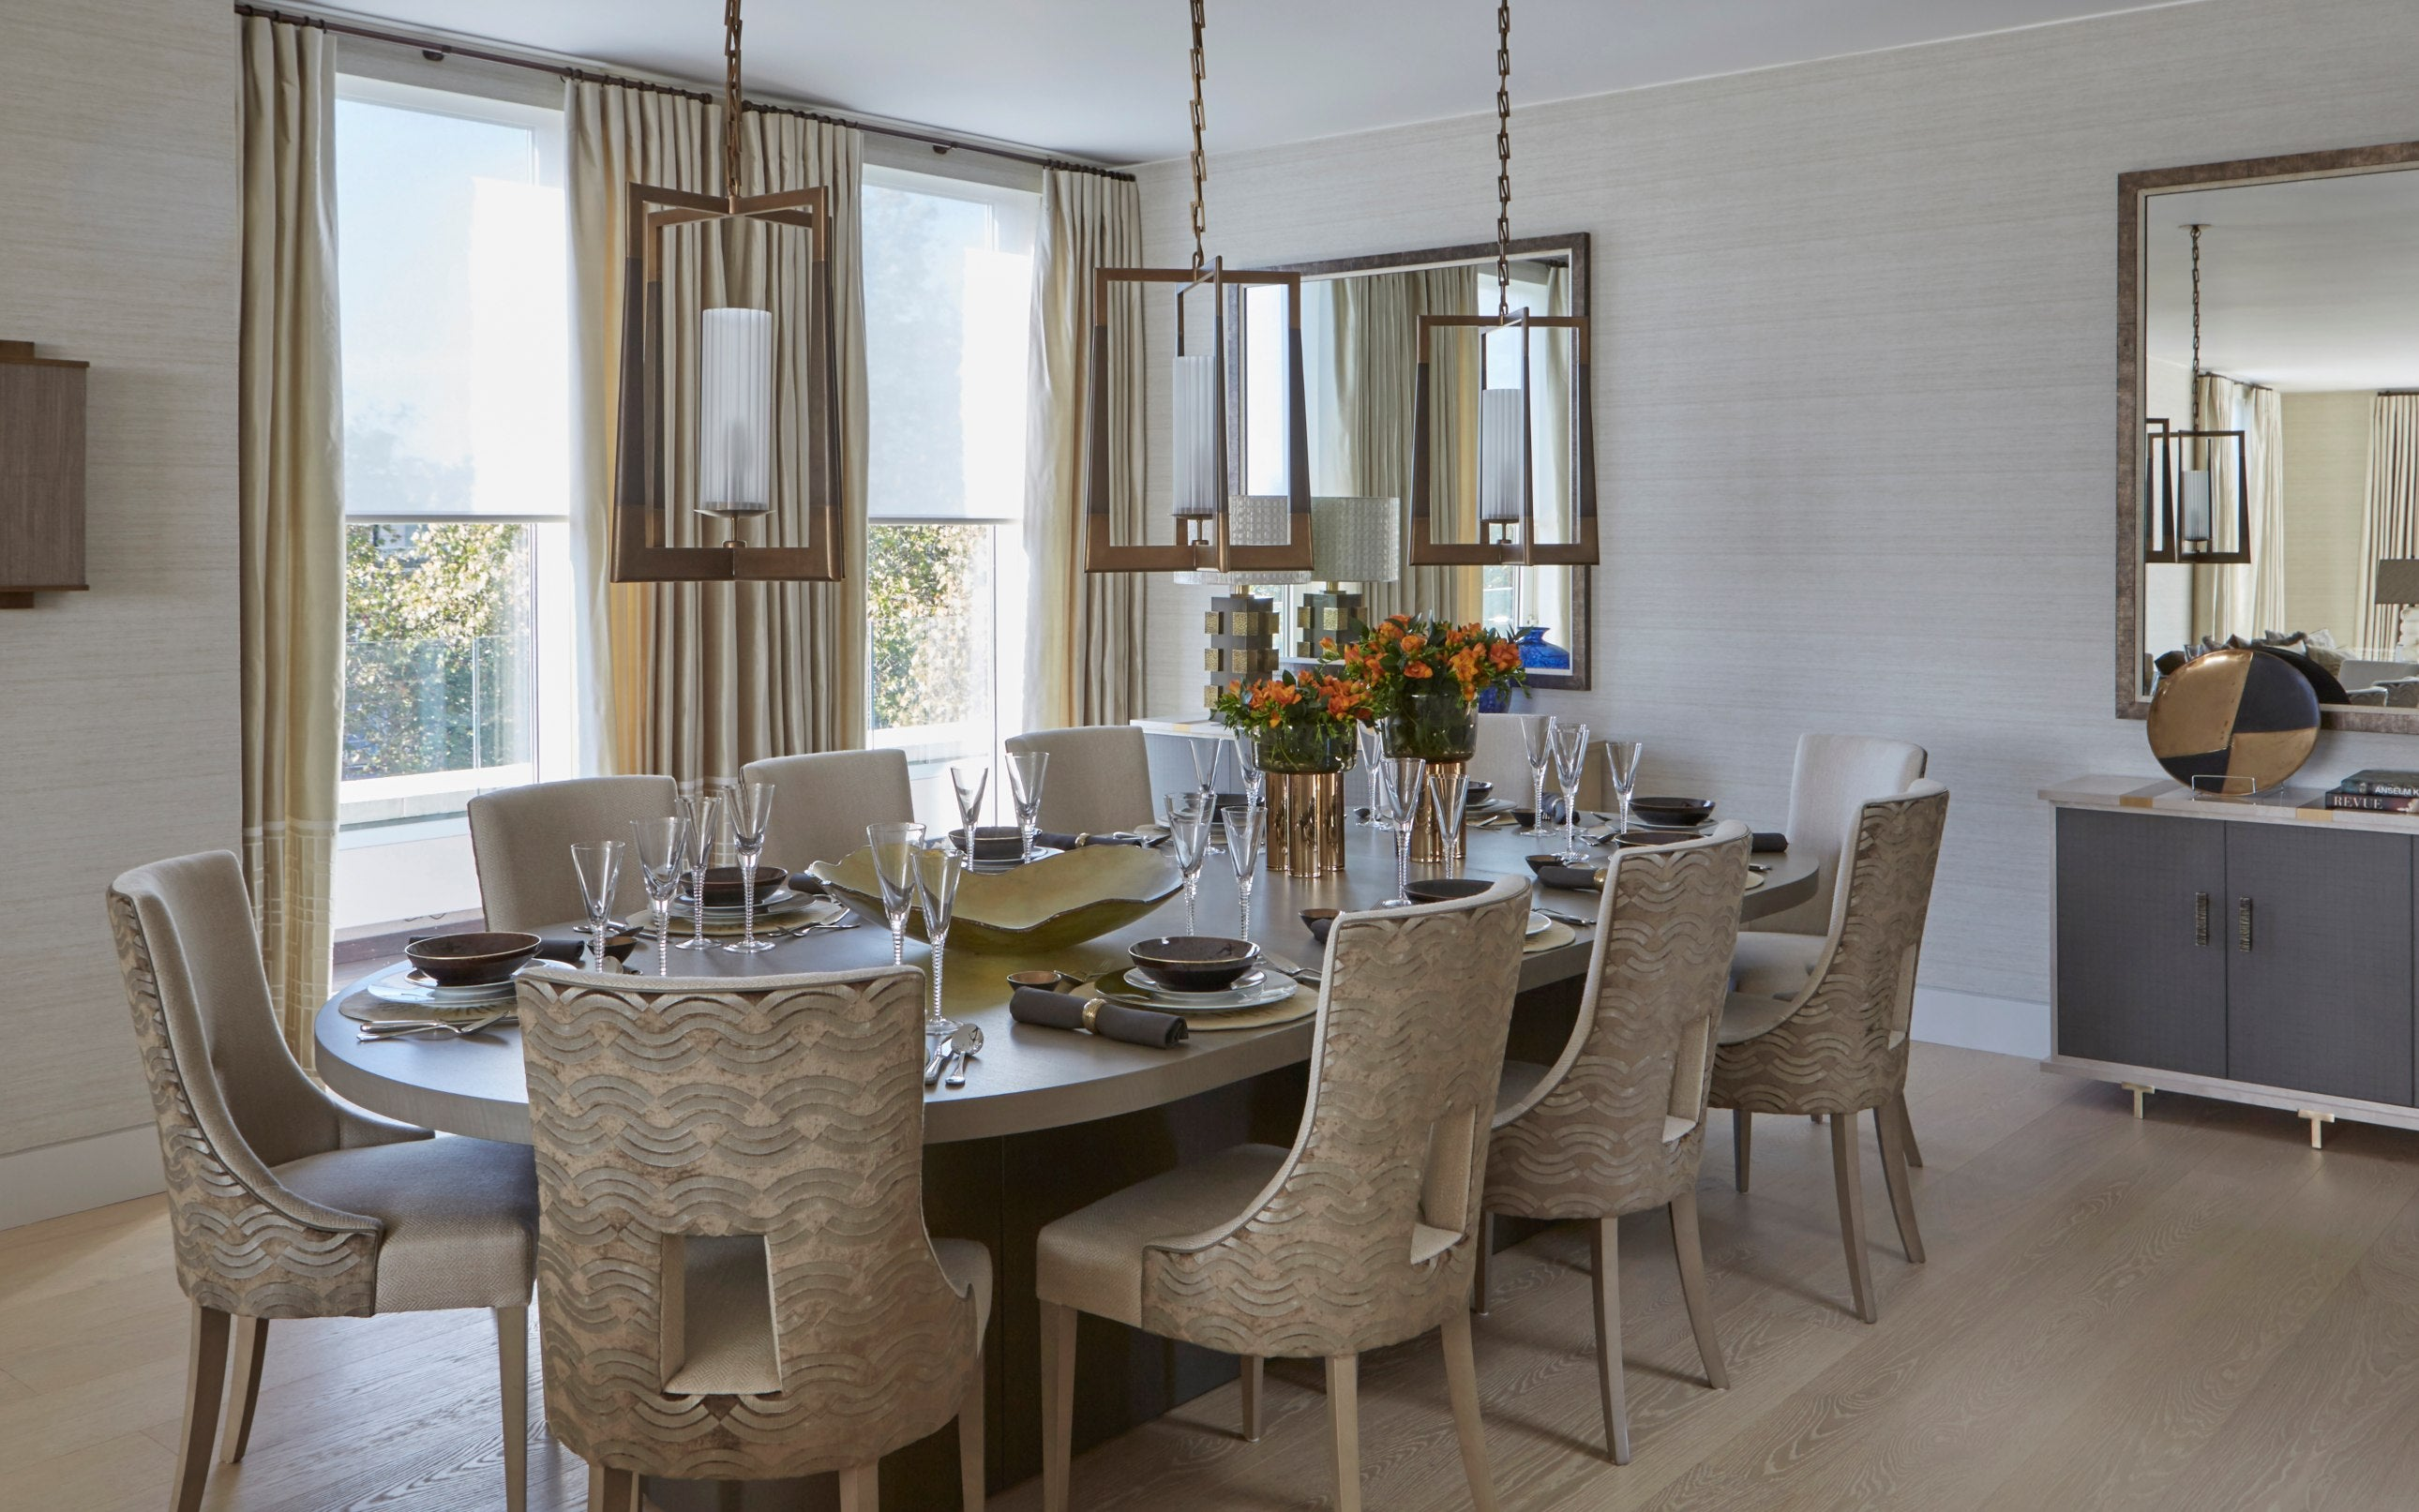 Oval Dining Table | Types of Dining Table Shapes for your Dining Room | LuxDeco.com